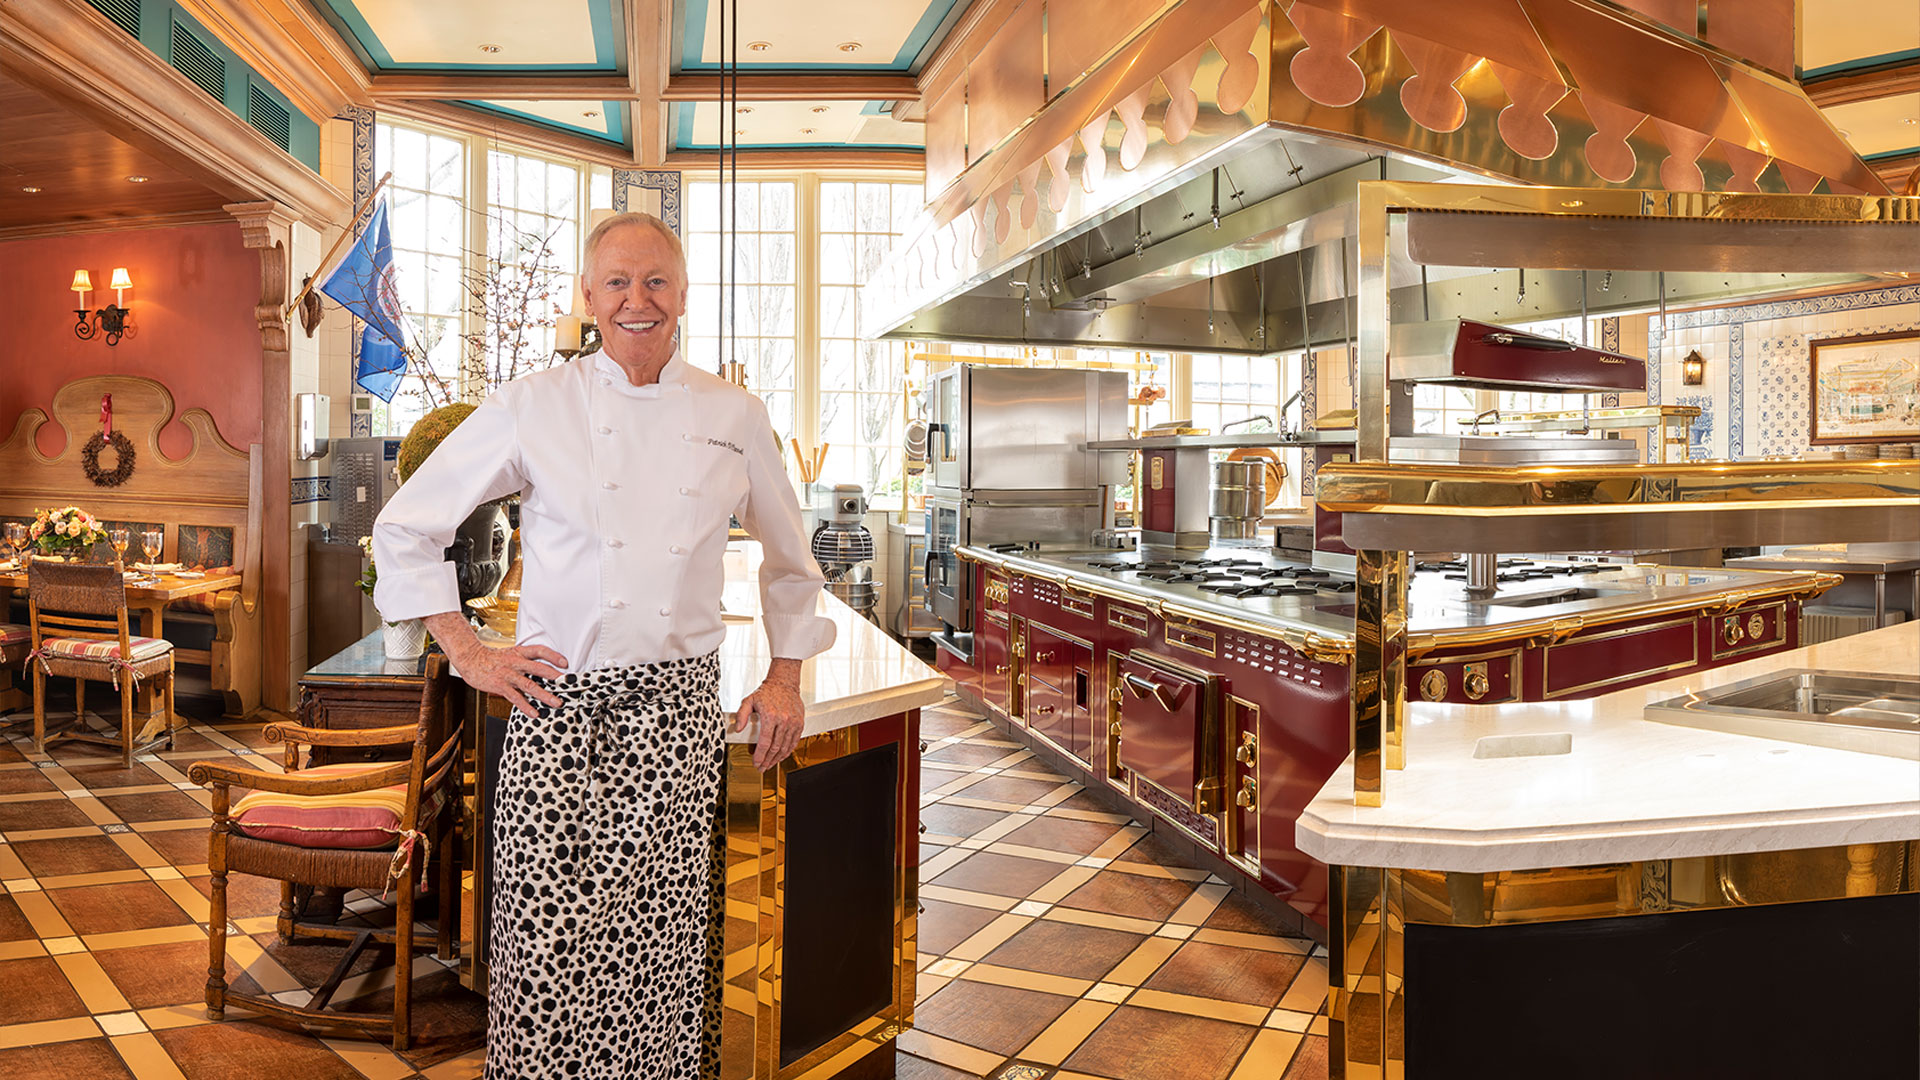 Chef Patrick O'Connell standing in front of a newly renovated kitchen.